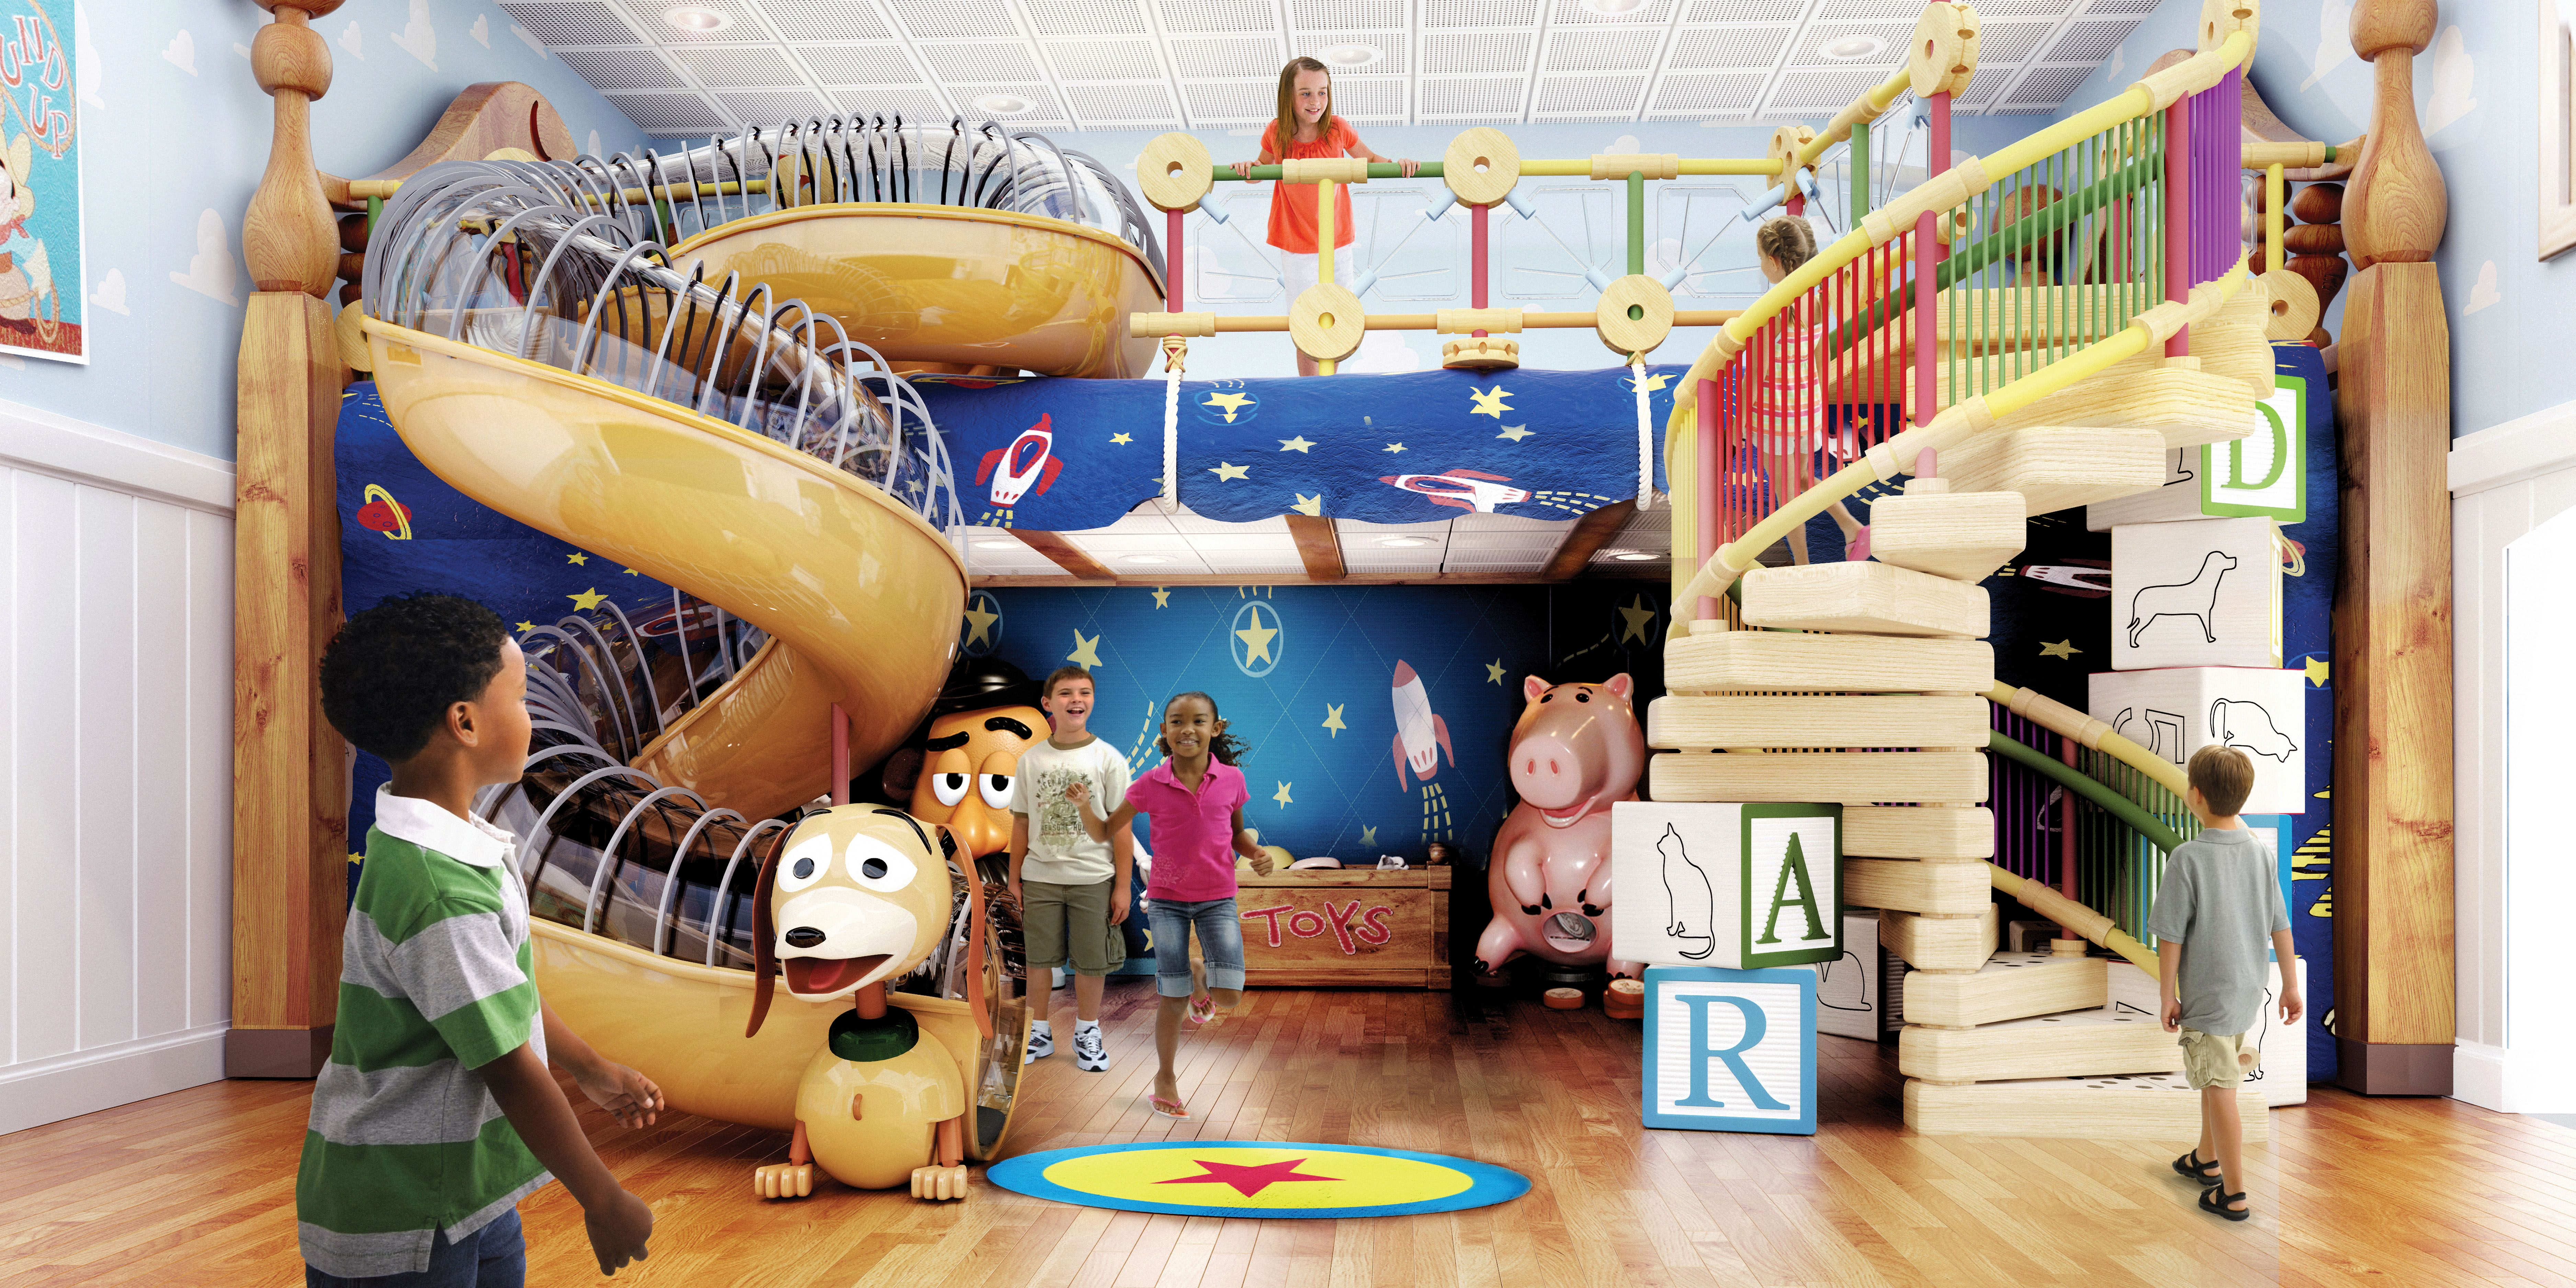 Andy's Room, familiar to kids from the Toy Story movies, offers places to climb; computers integrated into the walls, for games; costumes and props for make-believe.